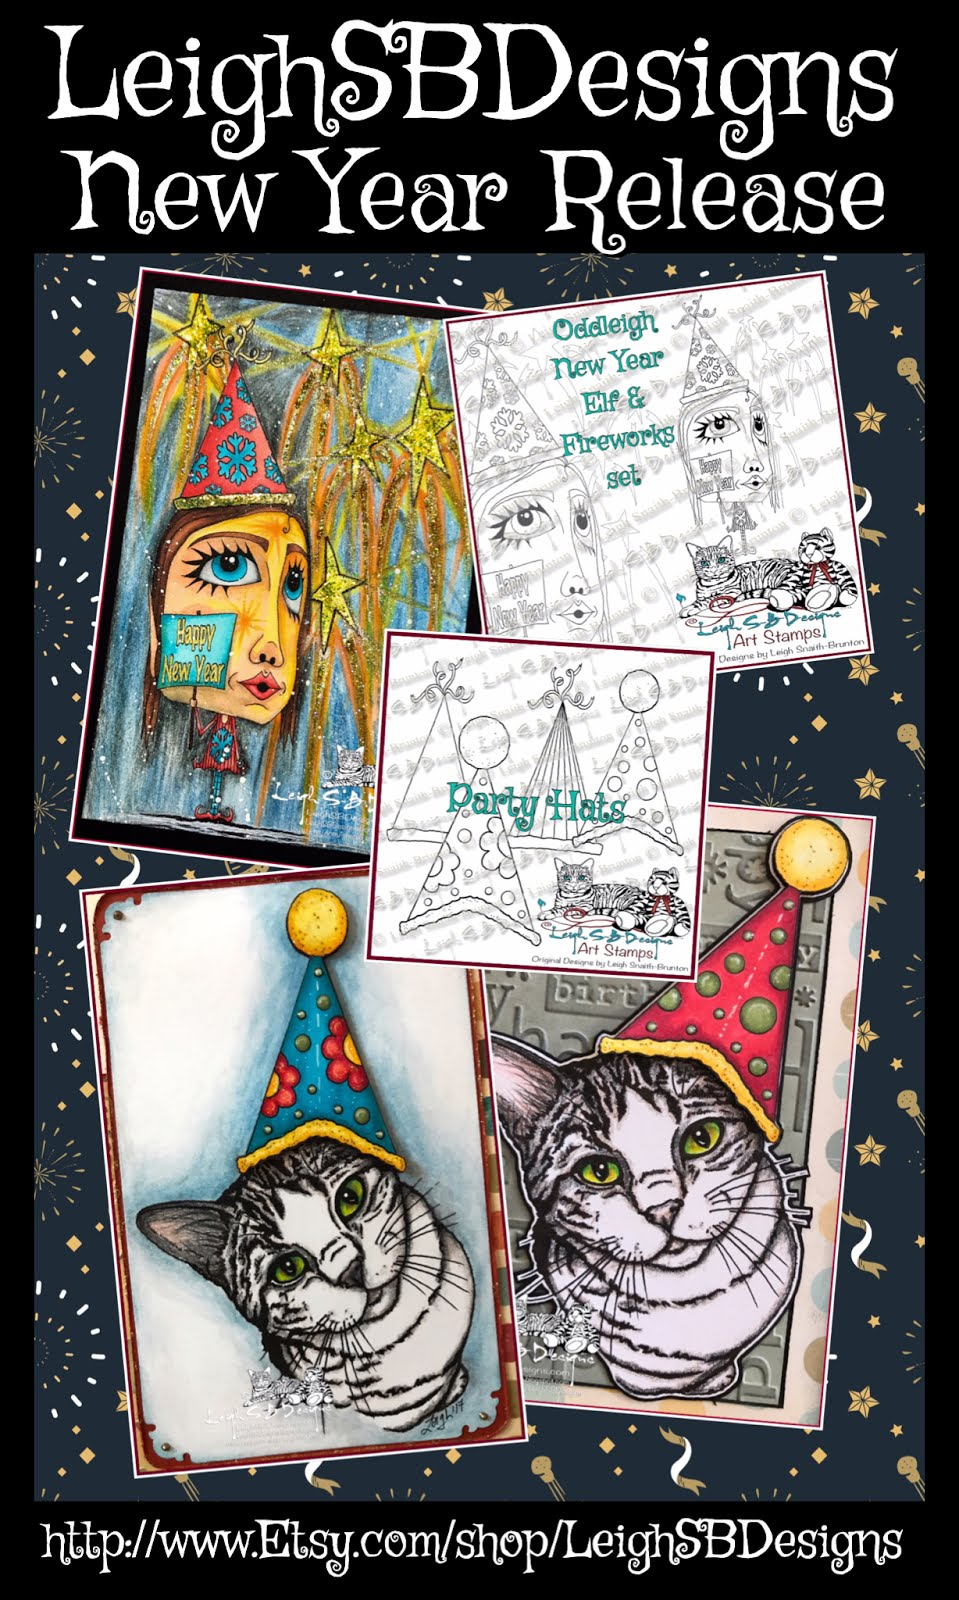 Oddleigh New Year Elf & Party Hats Pack Release